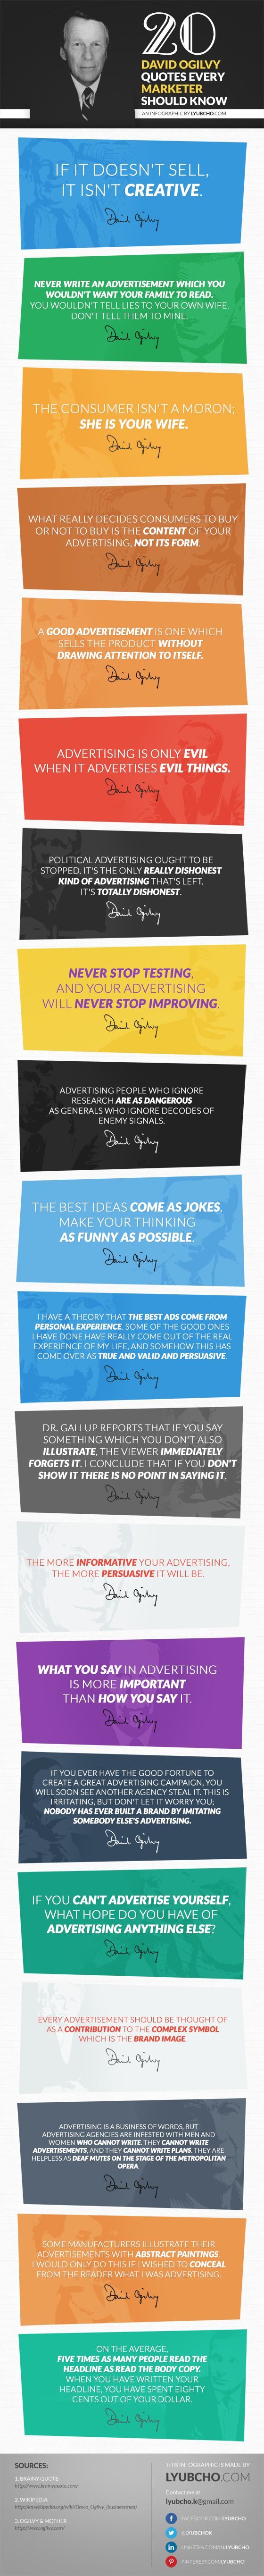 20 David Ogilvy Quotes Every Marketer Should Know / #INFOGRAPHIC